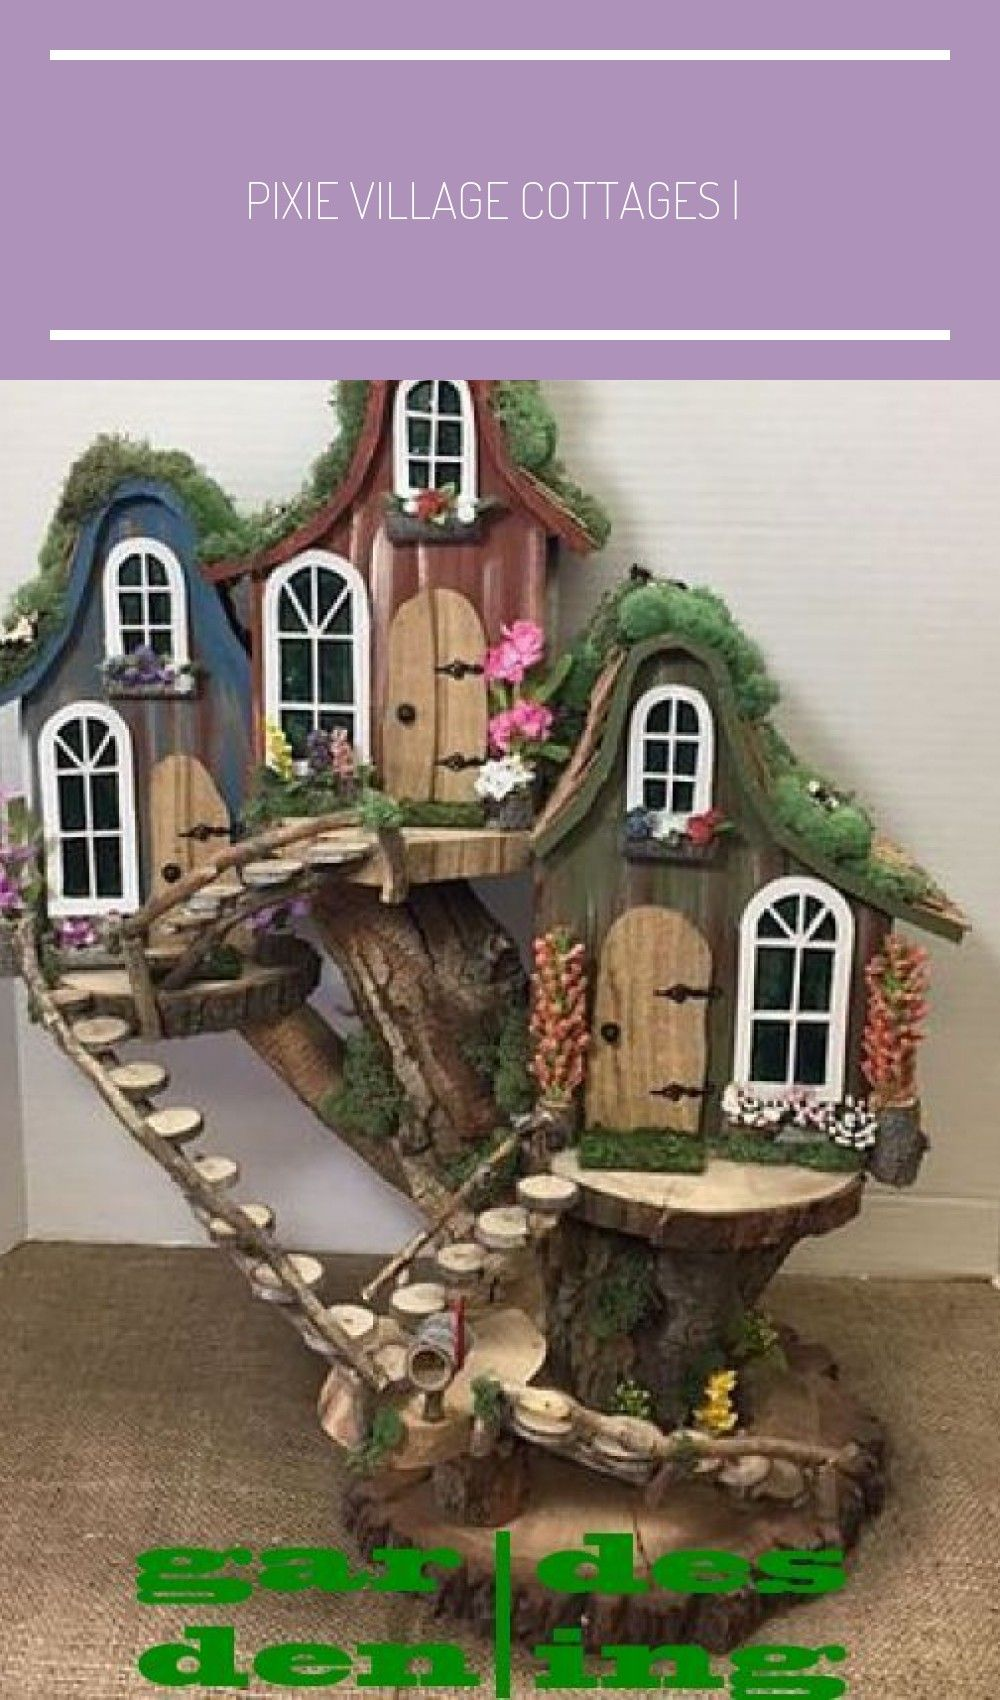 Pixie Village Cottages in 2020 Fairy tree houses